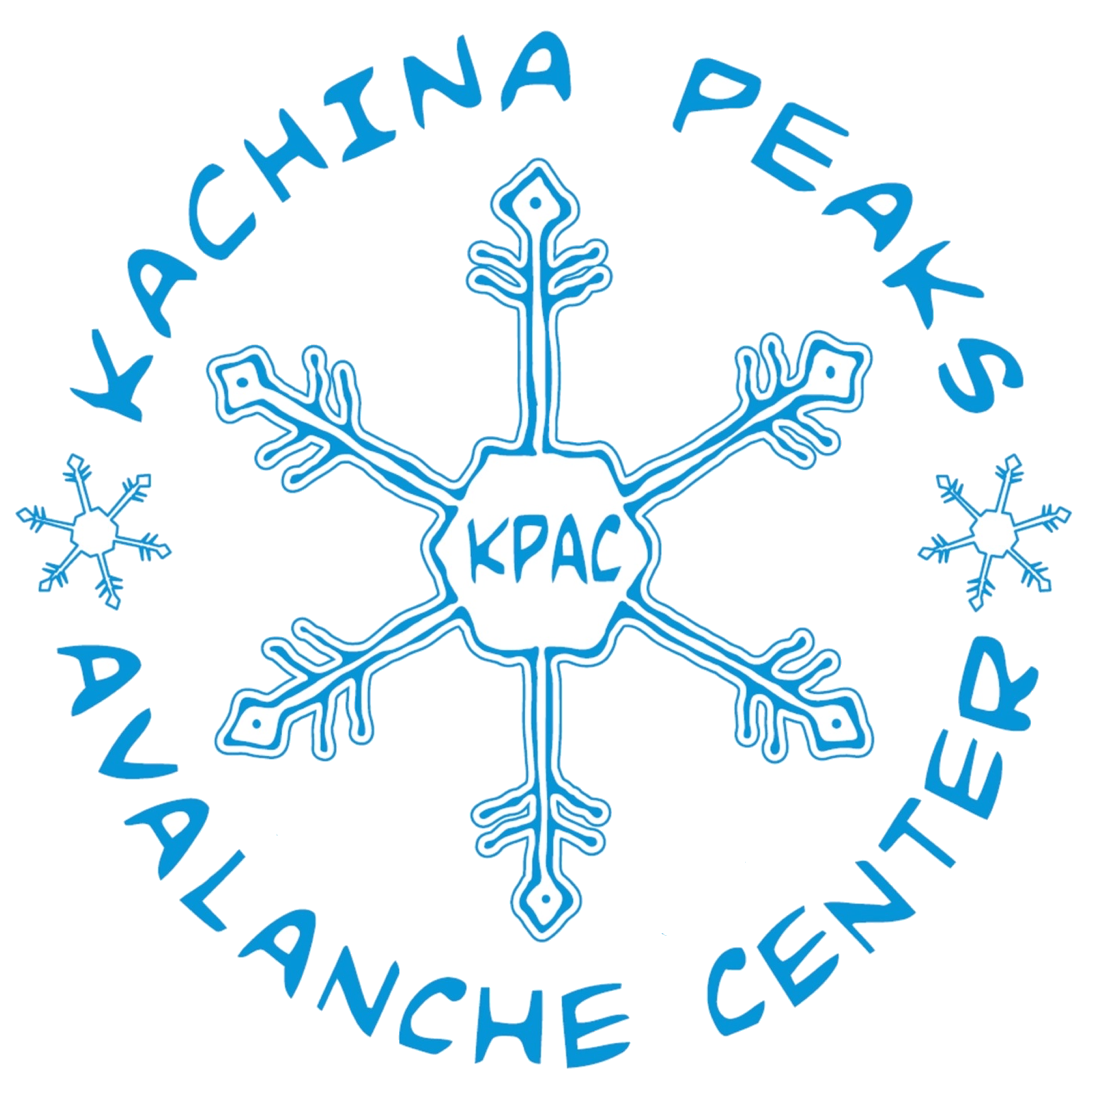 hpac guidance document for guidelines